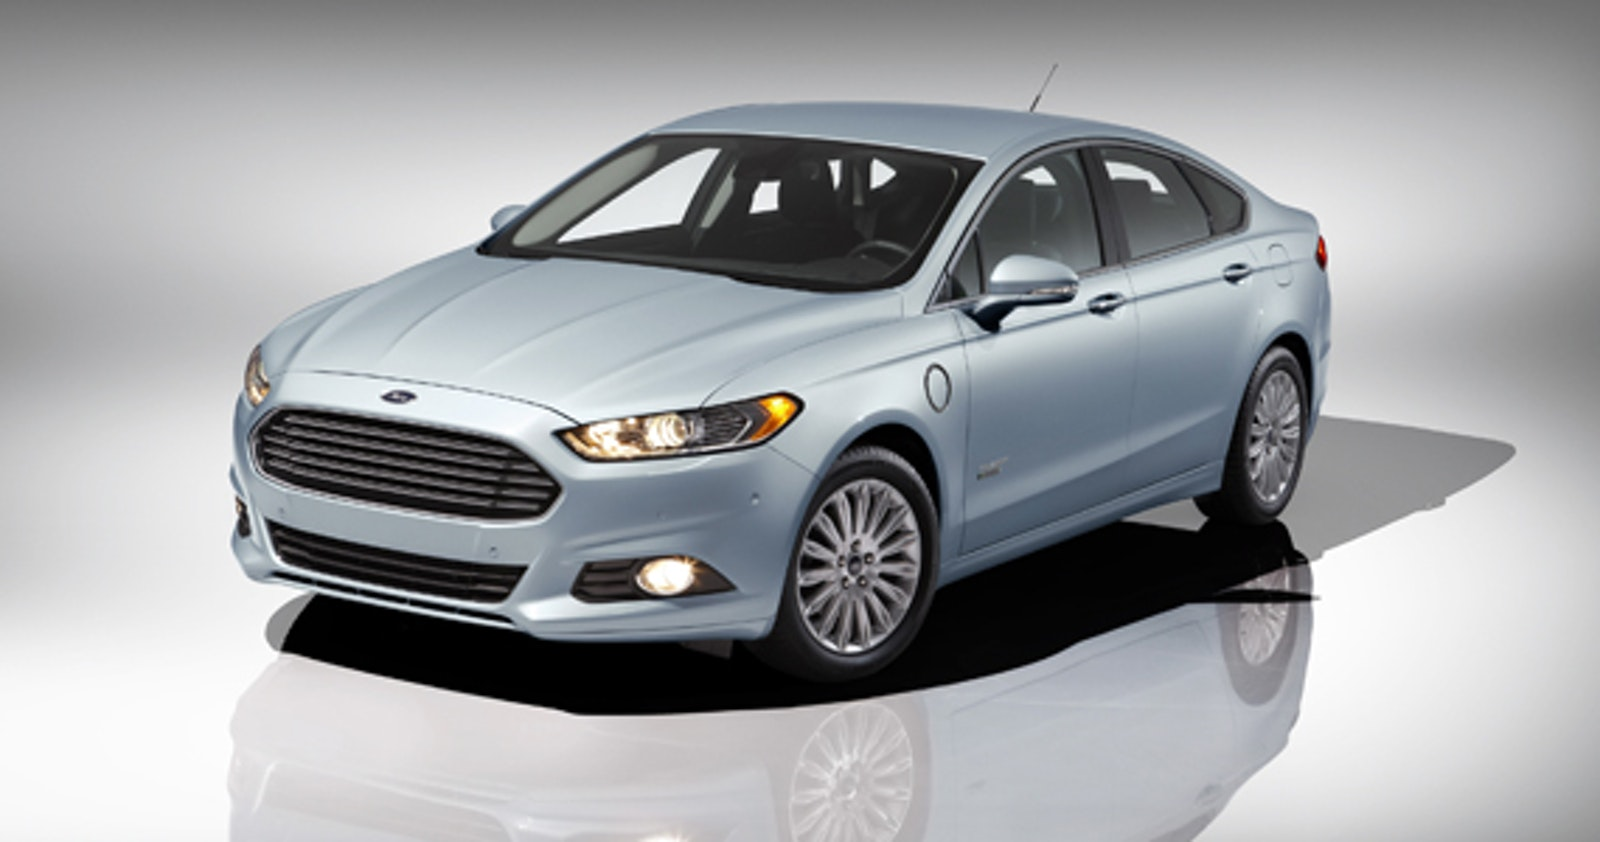 Already Ford S Most Fuel Efficient Sedan The All New Fusion Energi Now Has An Epa Rated Total Range Of Up To 620 Miles And Ability Drive 21